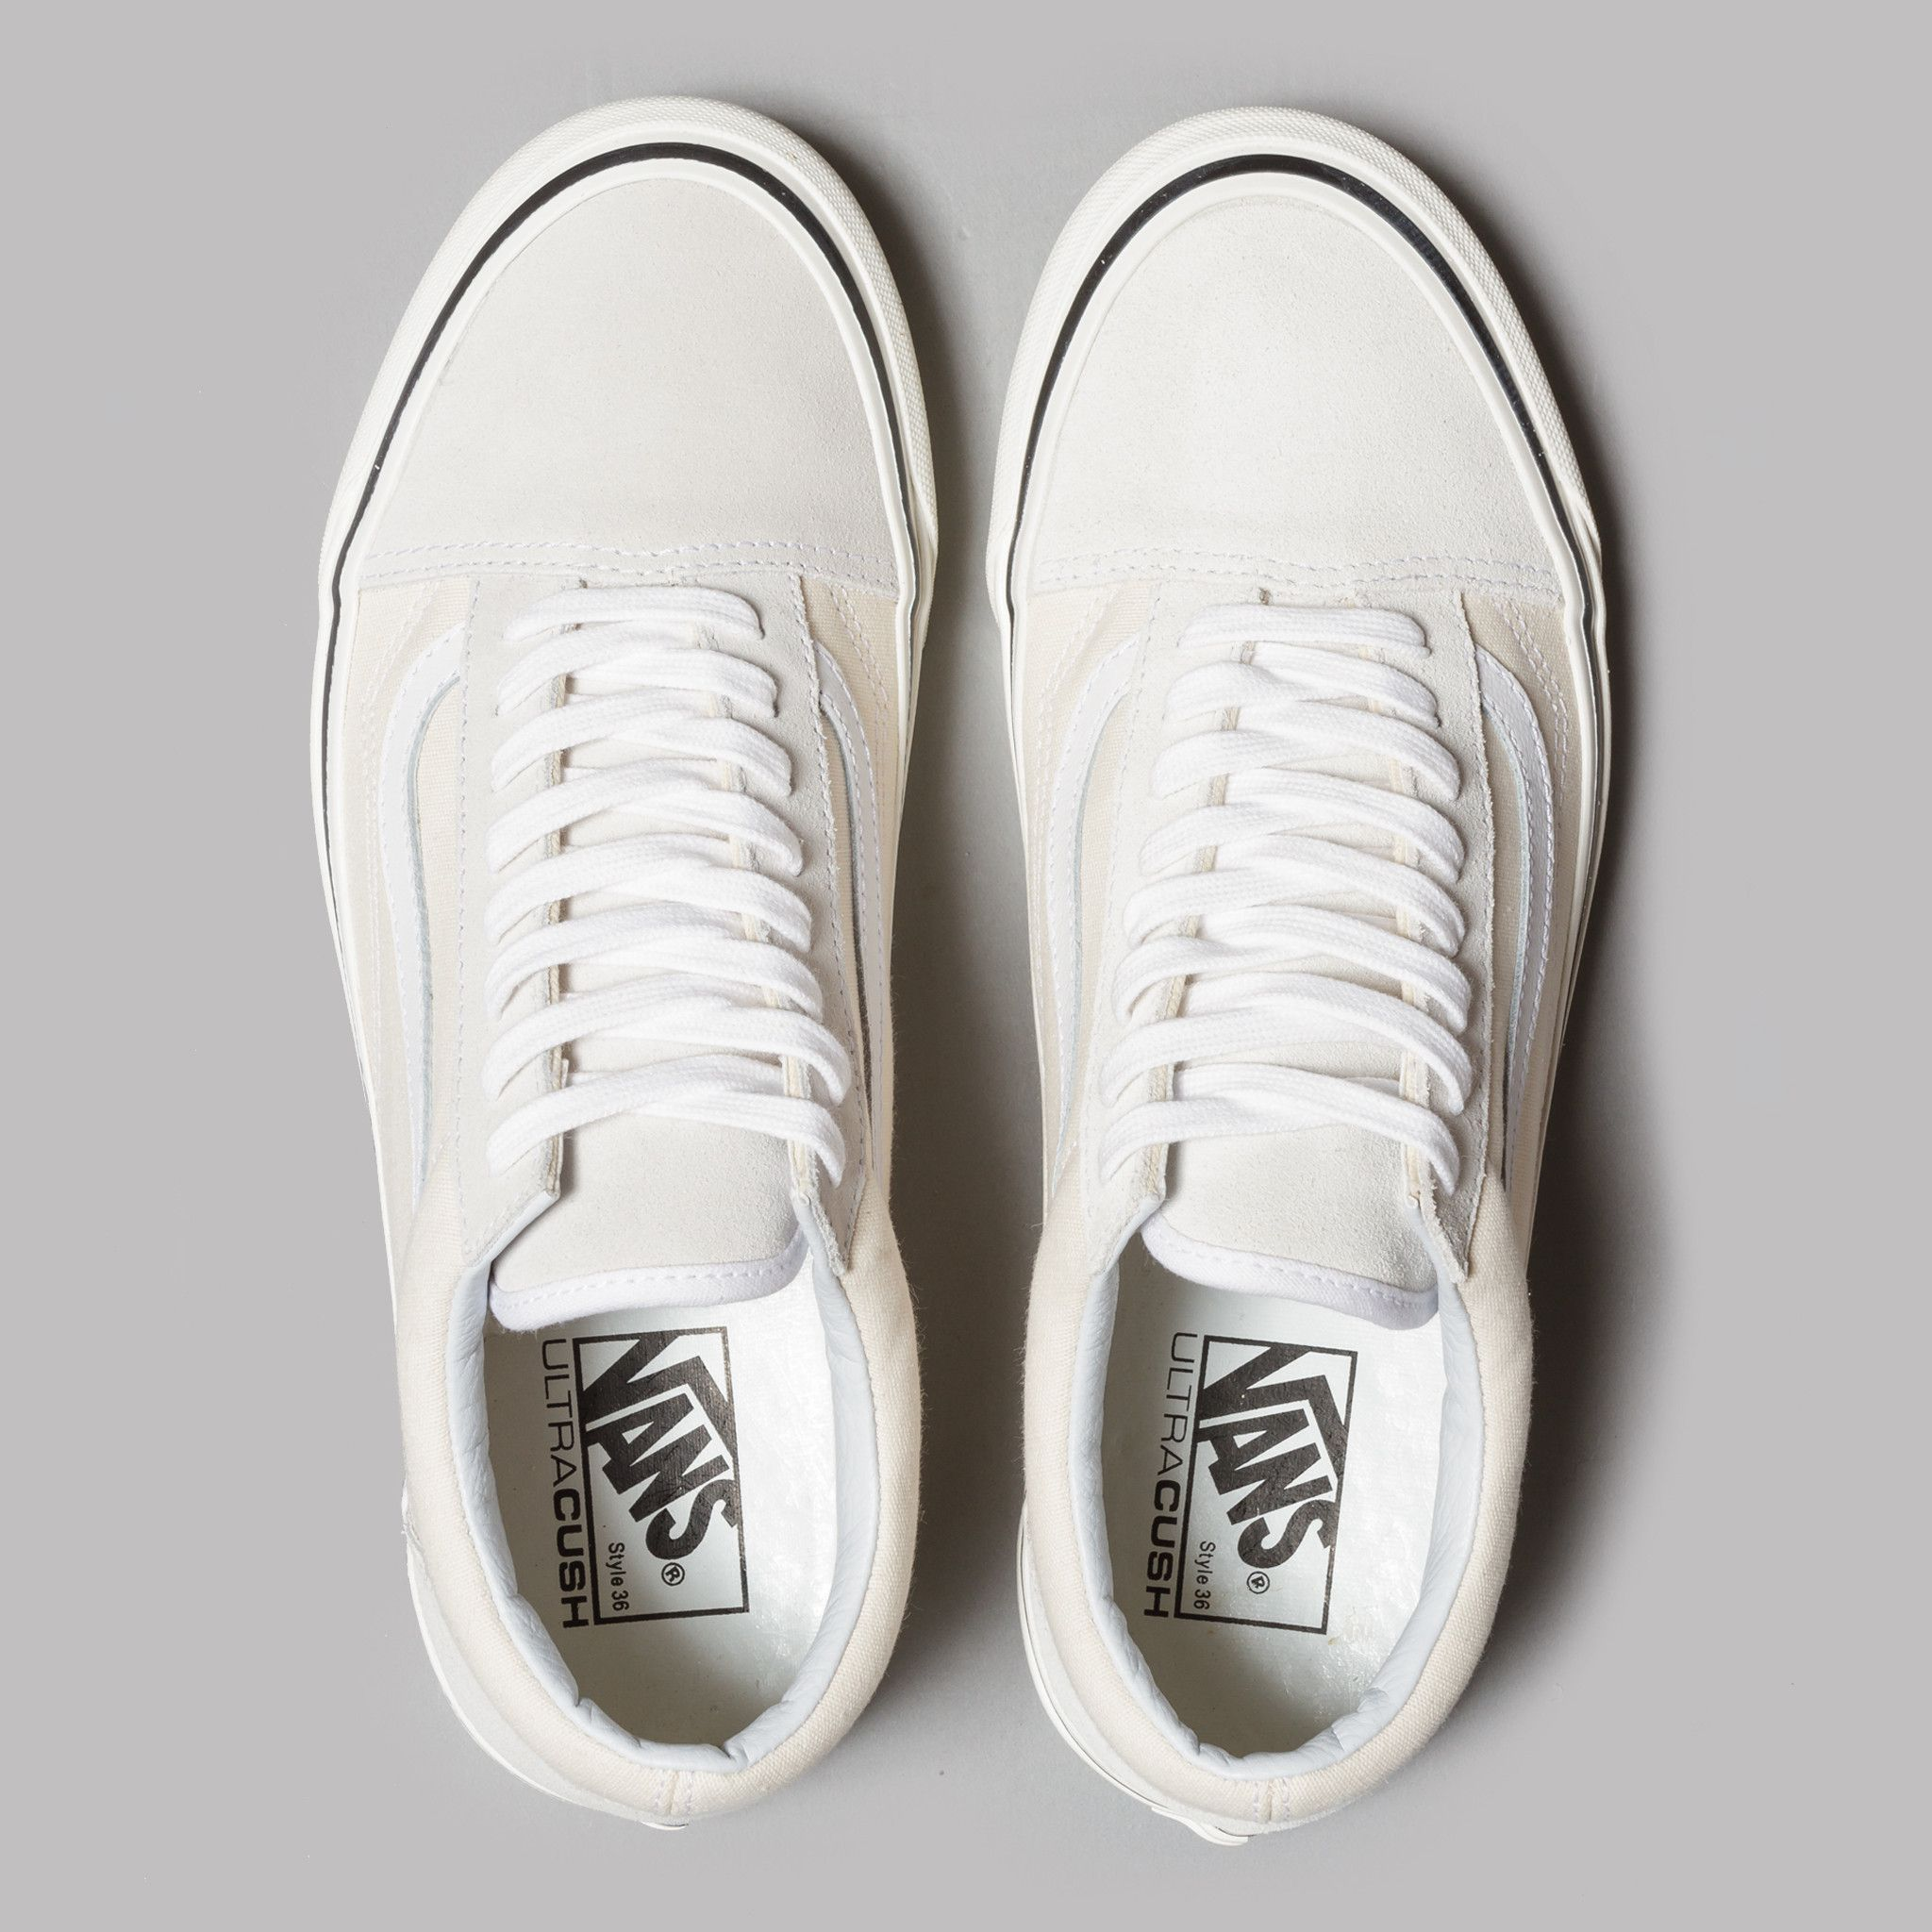 8ab8af4fb93a1e Vans Old Skool 36 DX Anaheim Factory (Classic White)